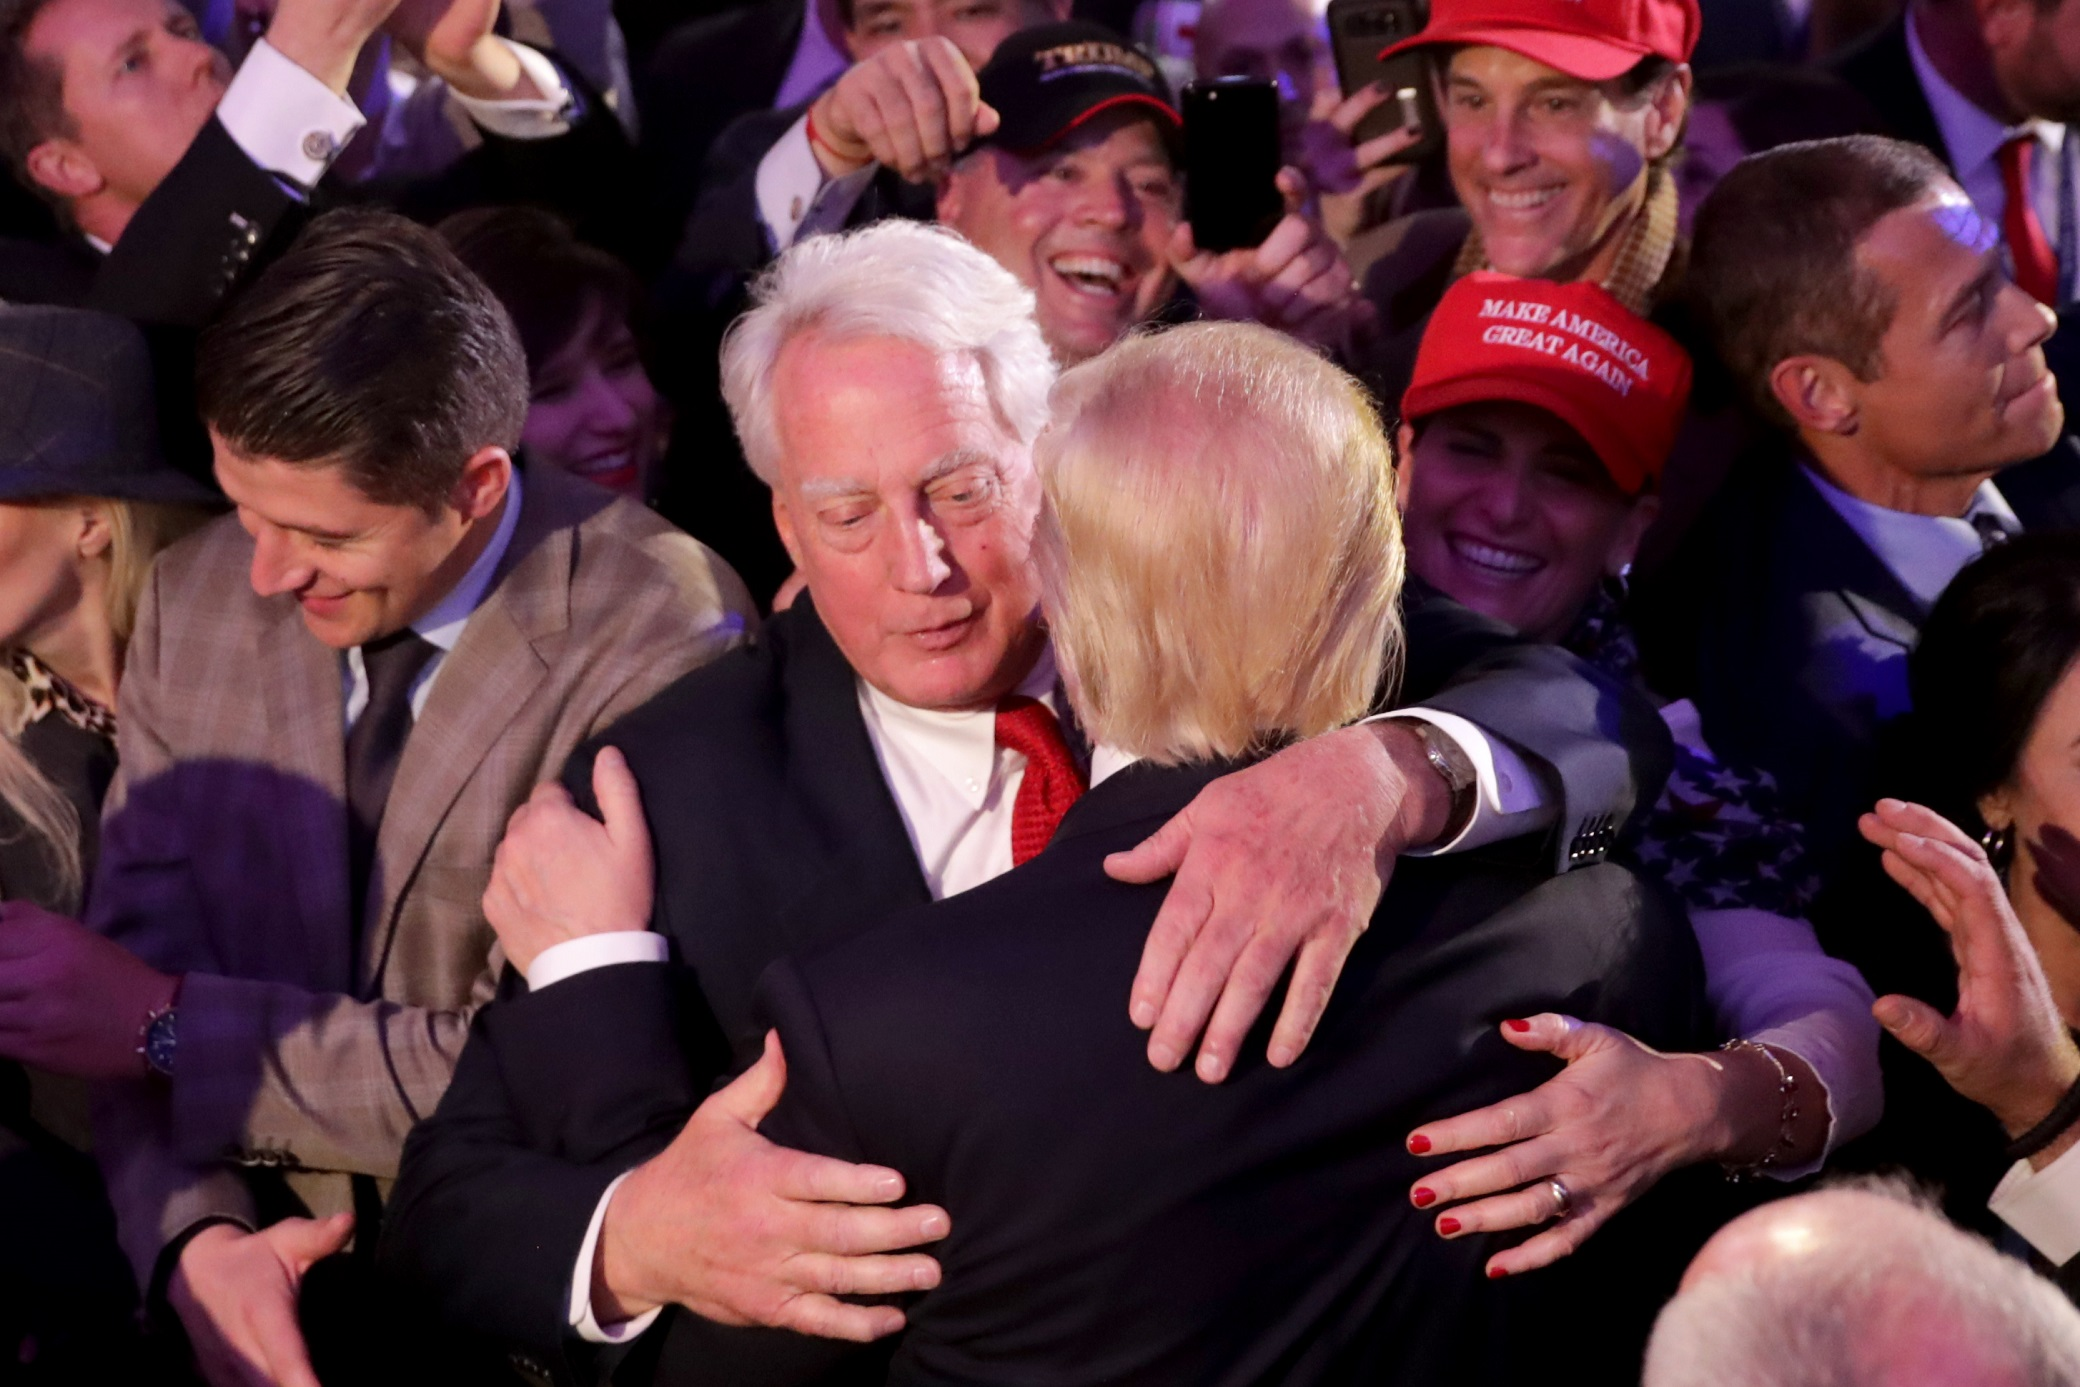 NEW YORK, NY - NOVEMBER 09:  Republican president-elect Donald Trump (R) hugs his brother Robert Trump after delivering his acceptance speech at the New York Hilton Midtown in the early morning hours of November 9, 2016 in New York City. Donald Trump defeated Democratic presidential nominee Hillary Clinton to become the 45th president of the United States.  (Photo by Chip Somodevilla/Getty Images)